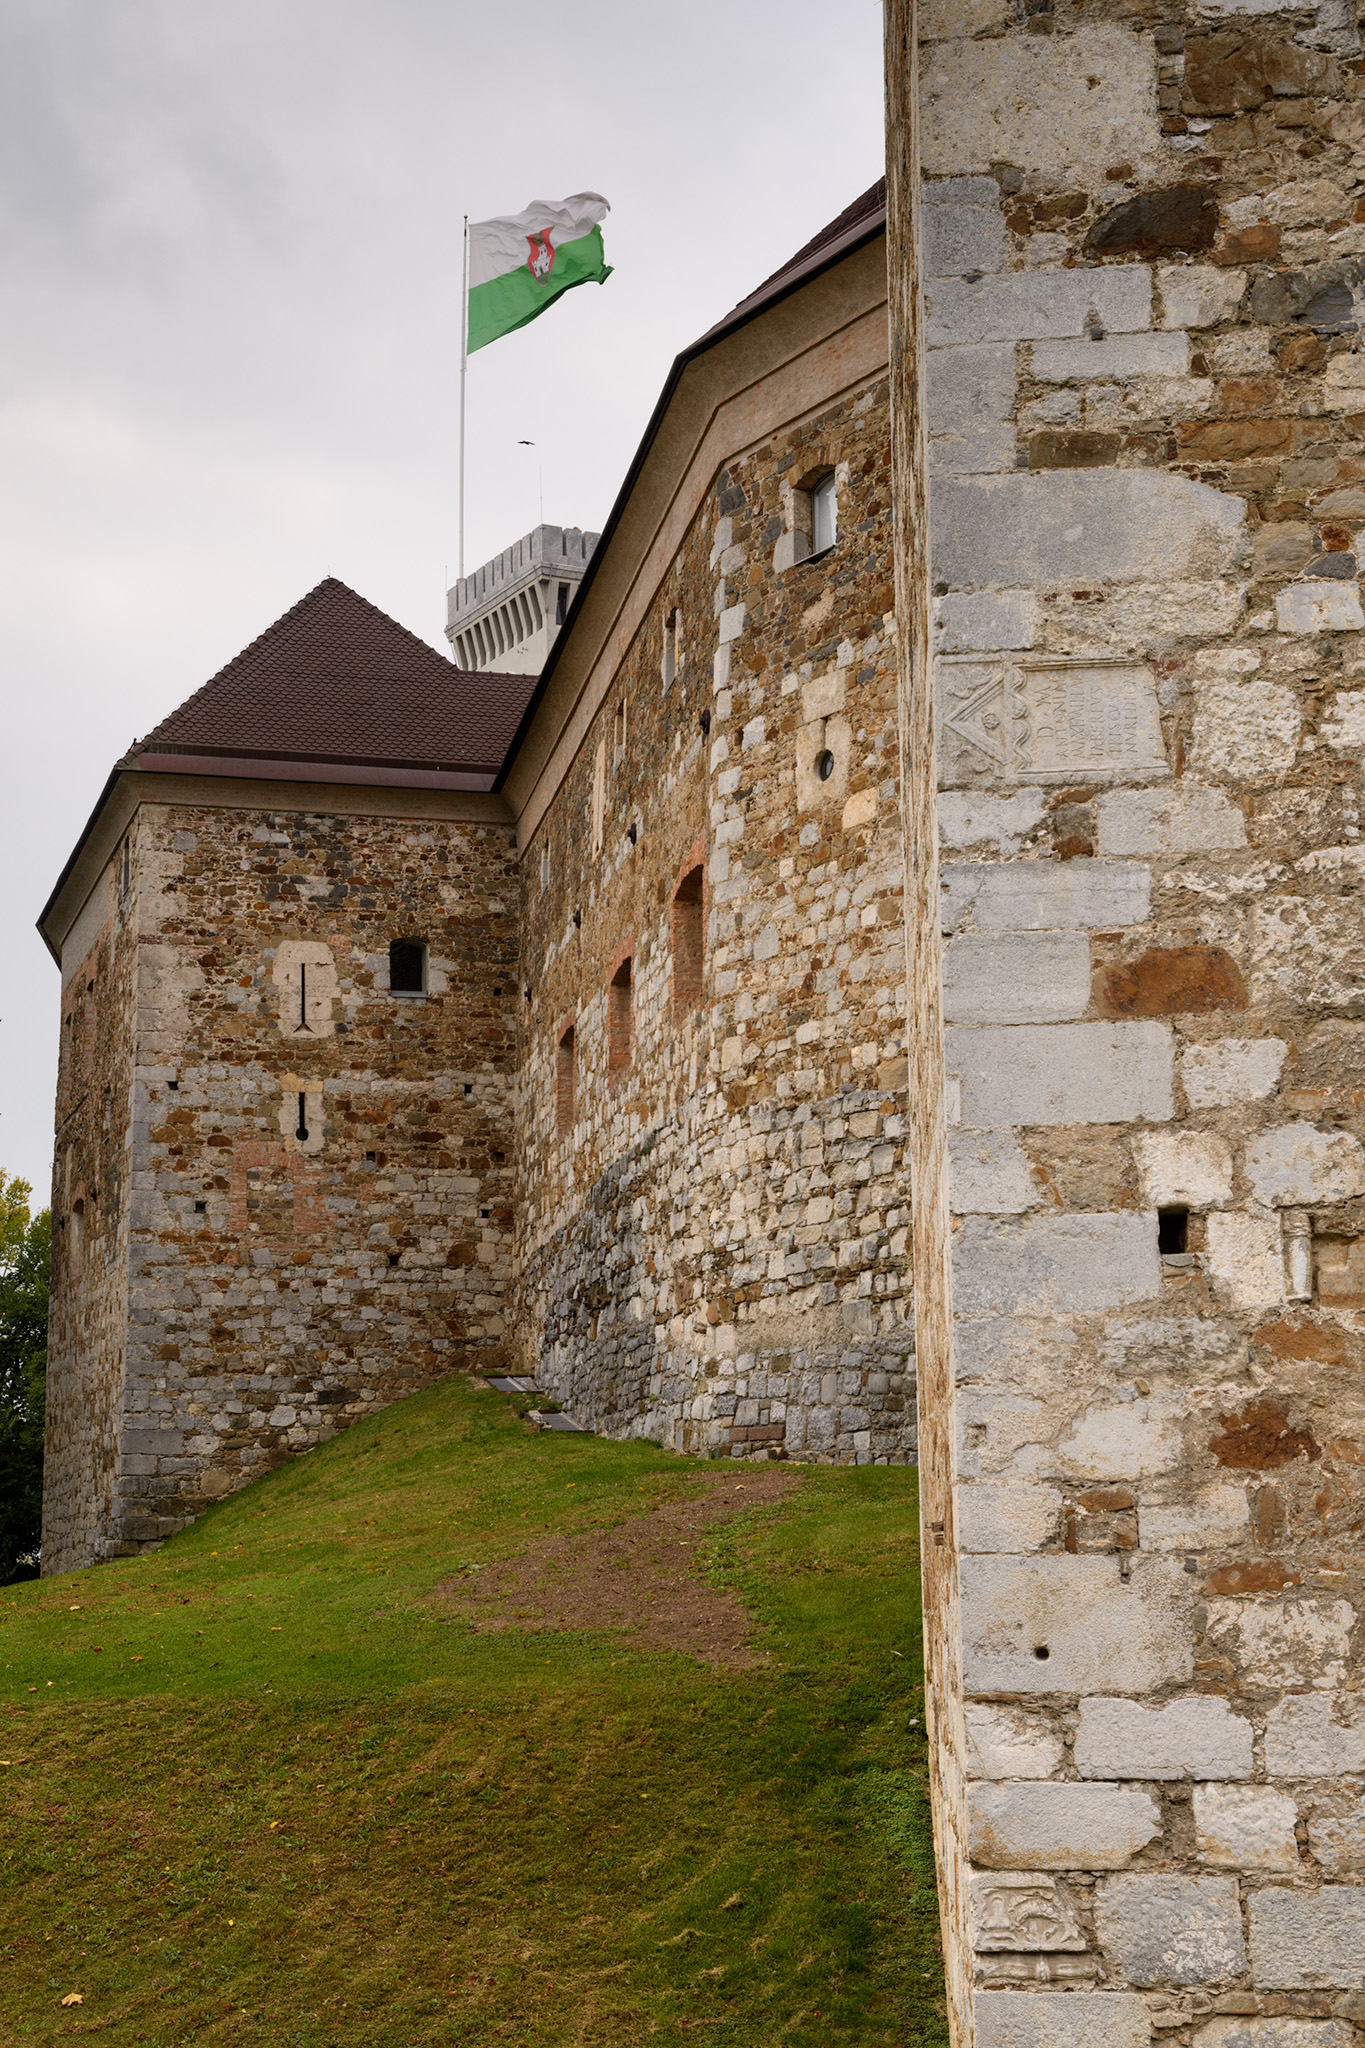 Outer walls of the Ljubljana Castle